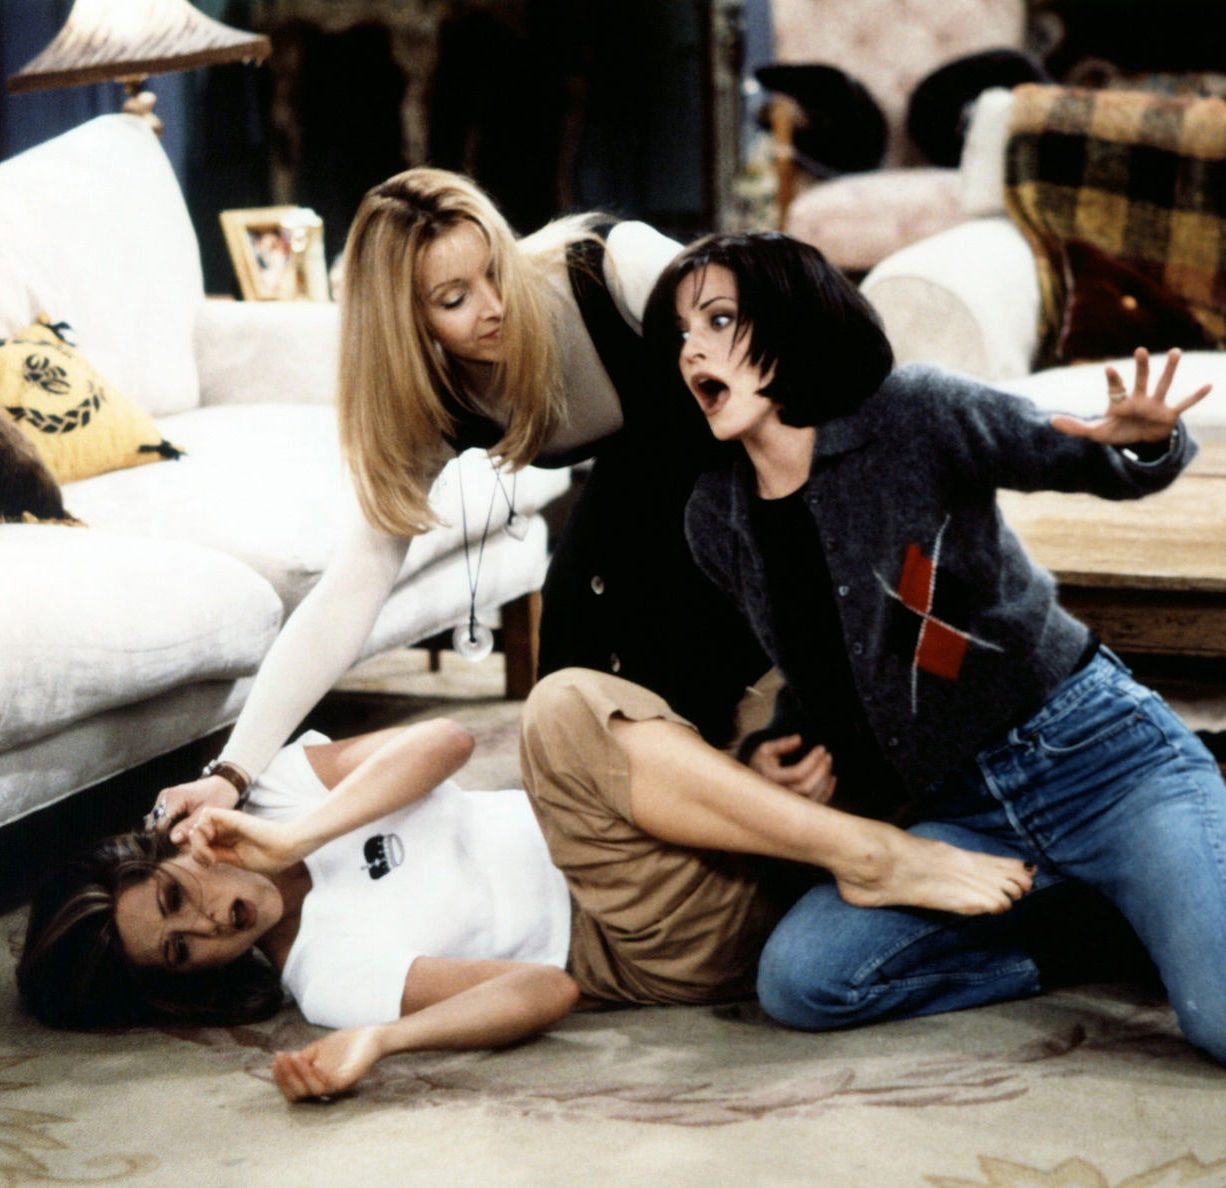 1 62 e1605266524774 There Was Originally A 7th Friend, And More You Never Knew About Friends